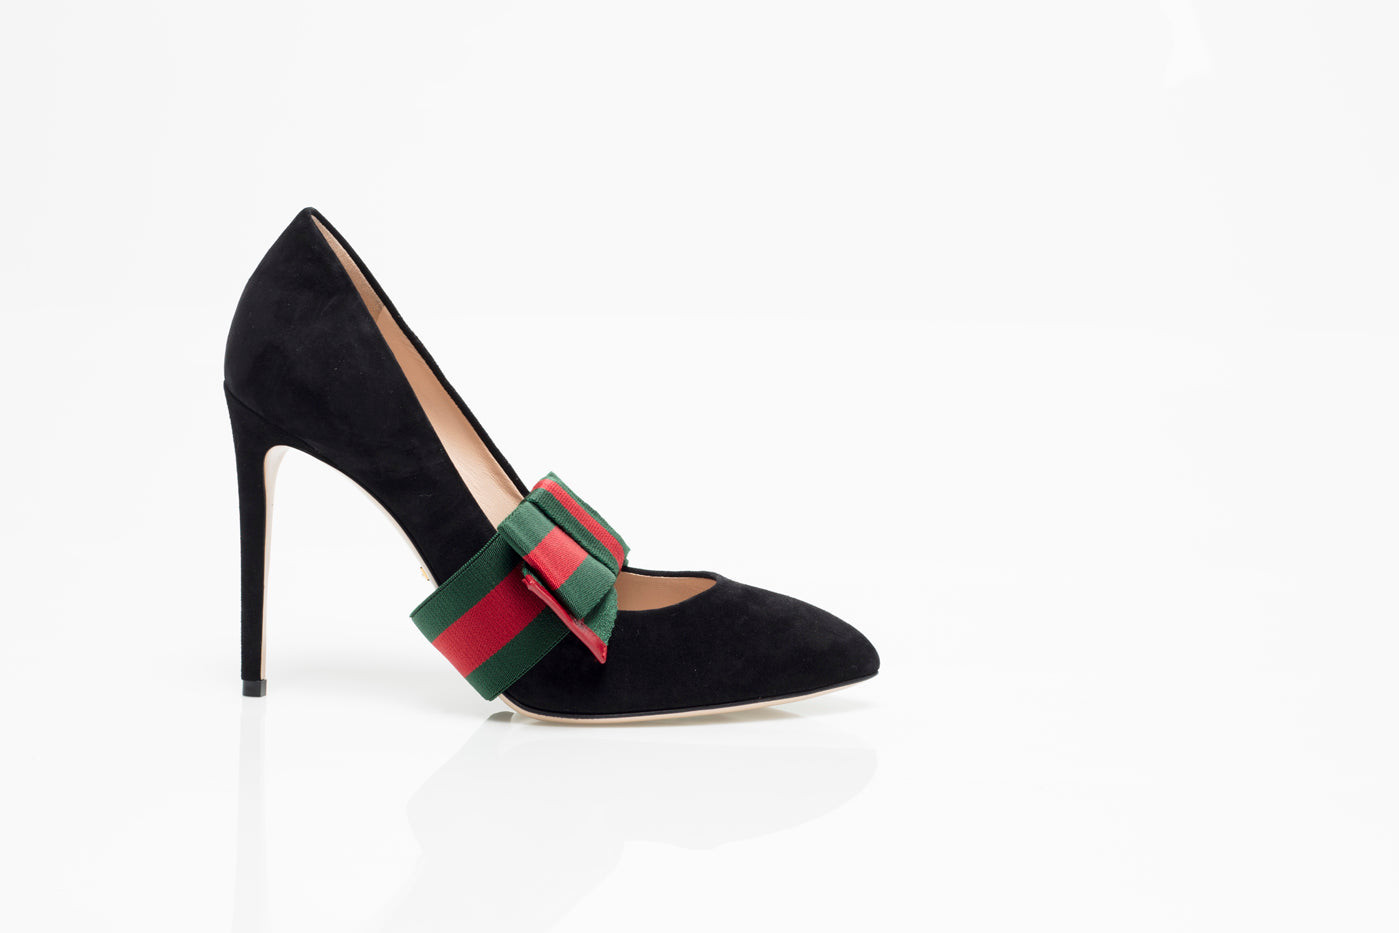 783a6a59445 Gucci Womens Shoes Suede Pump with Removable Bow